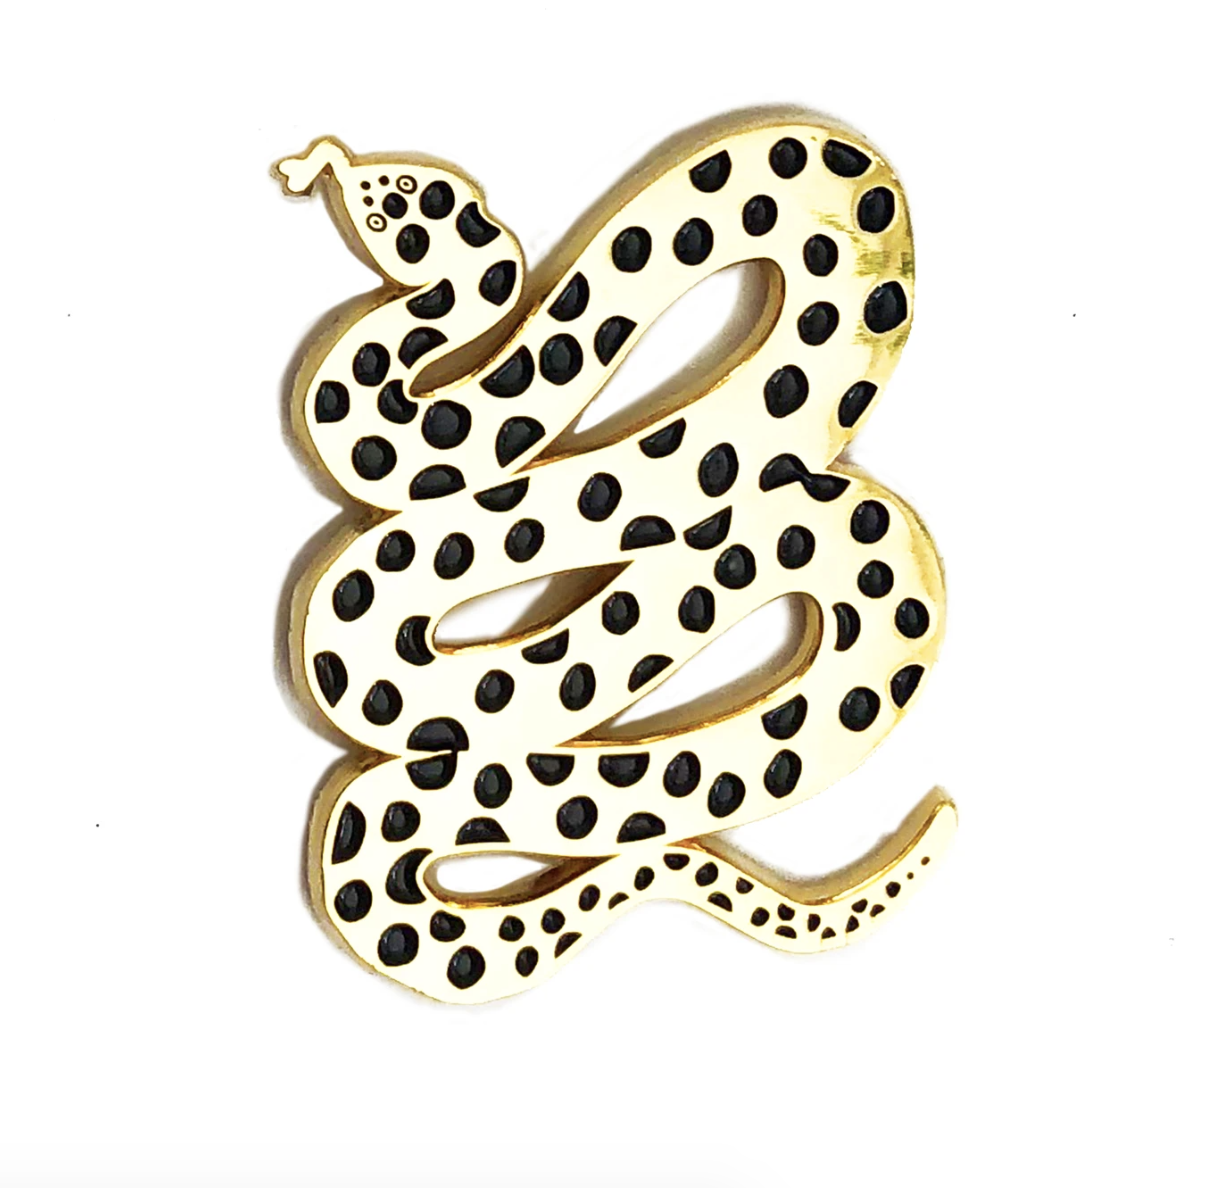 A spotted snake pin